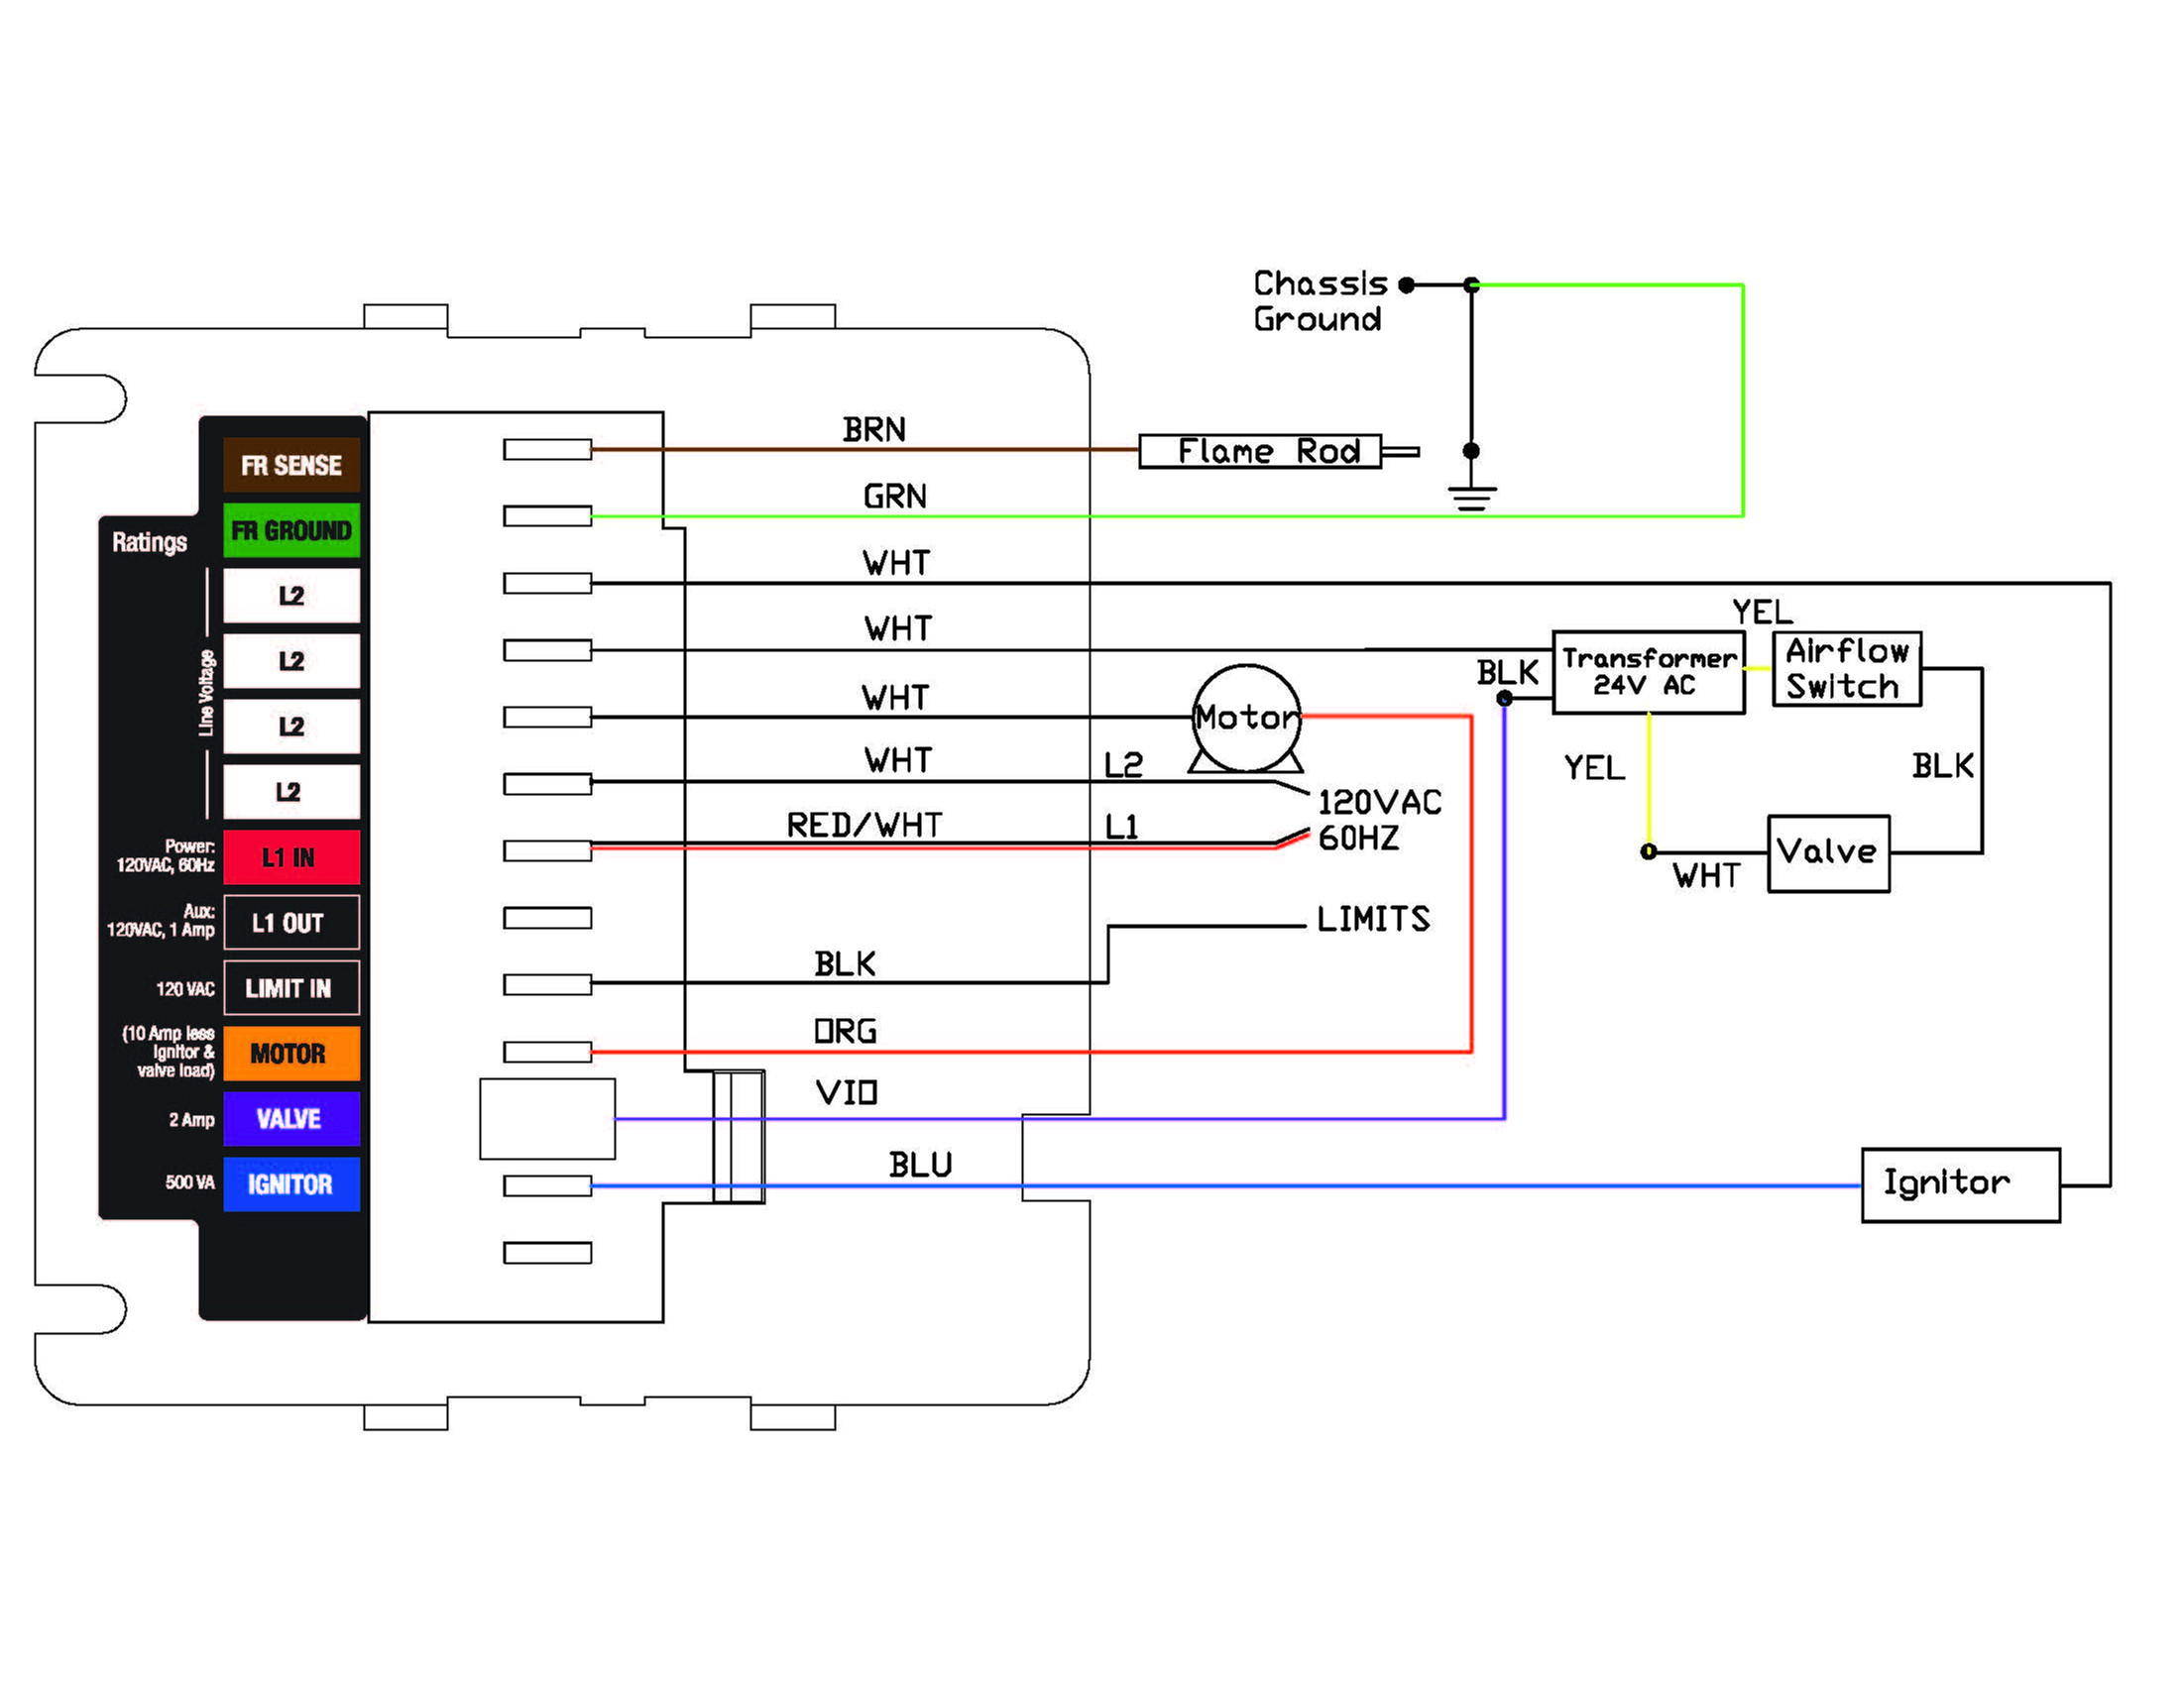 Wiring Diagram Carlin Combustion Technology Inc